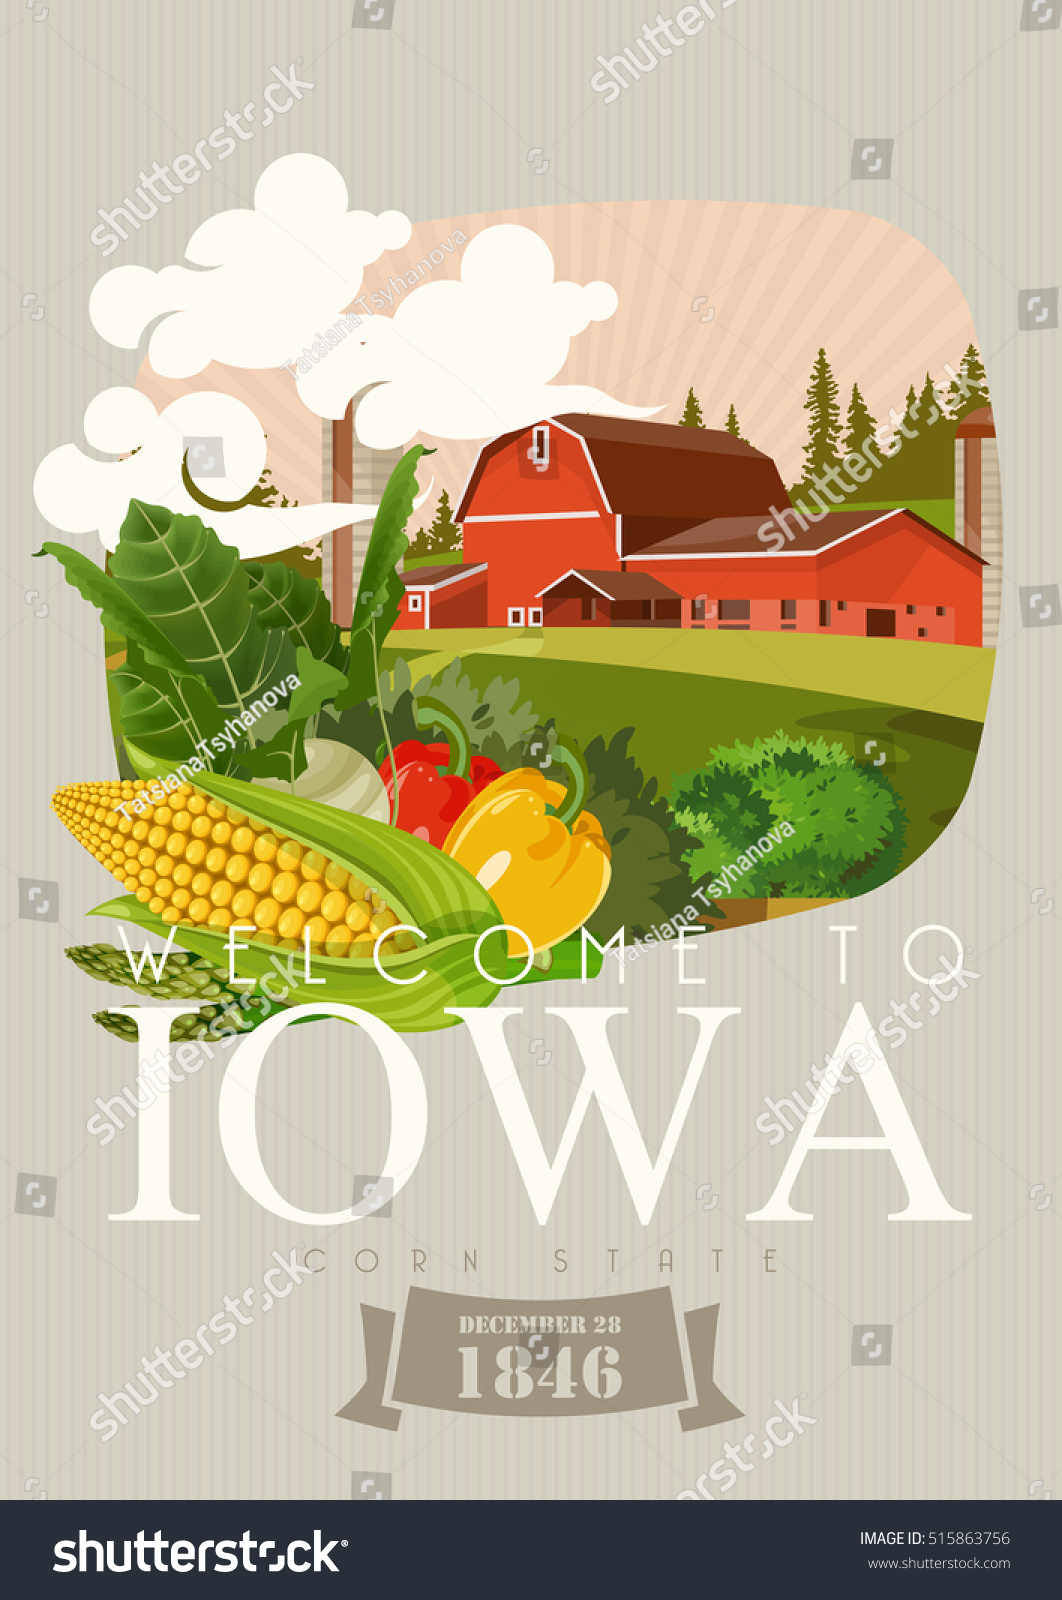 Iowa vector poster usa banner state stock vector 515863756 usa banner with state symbols united states of america card buycottarizona